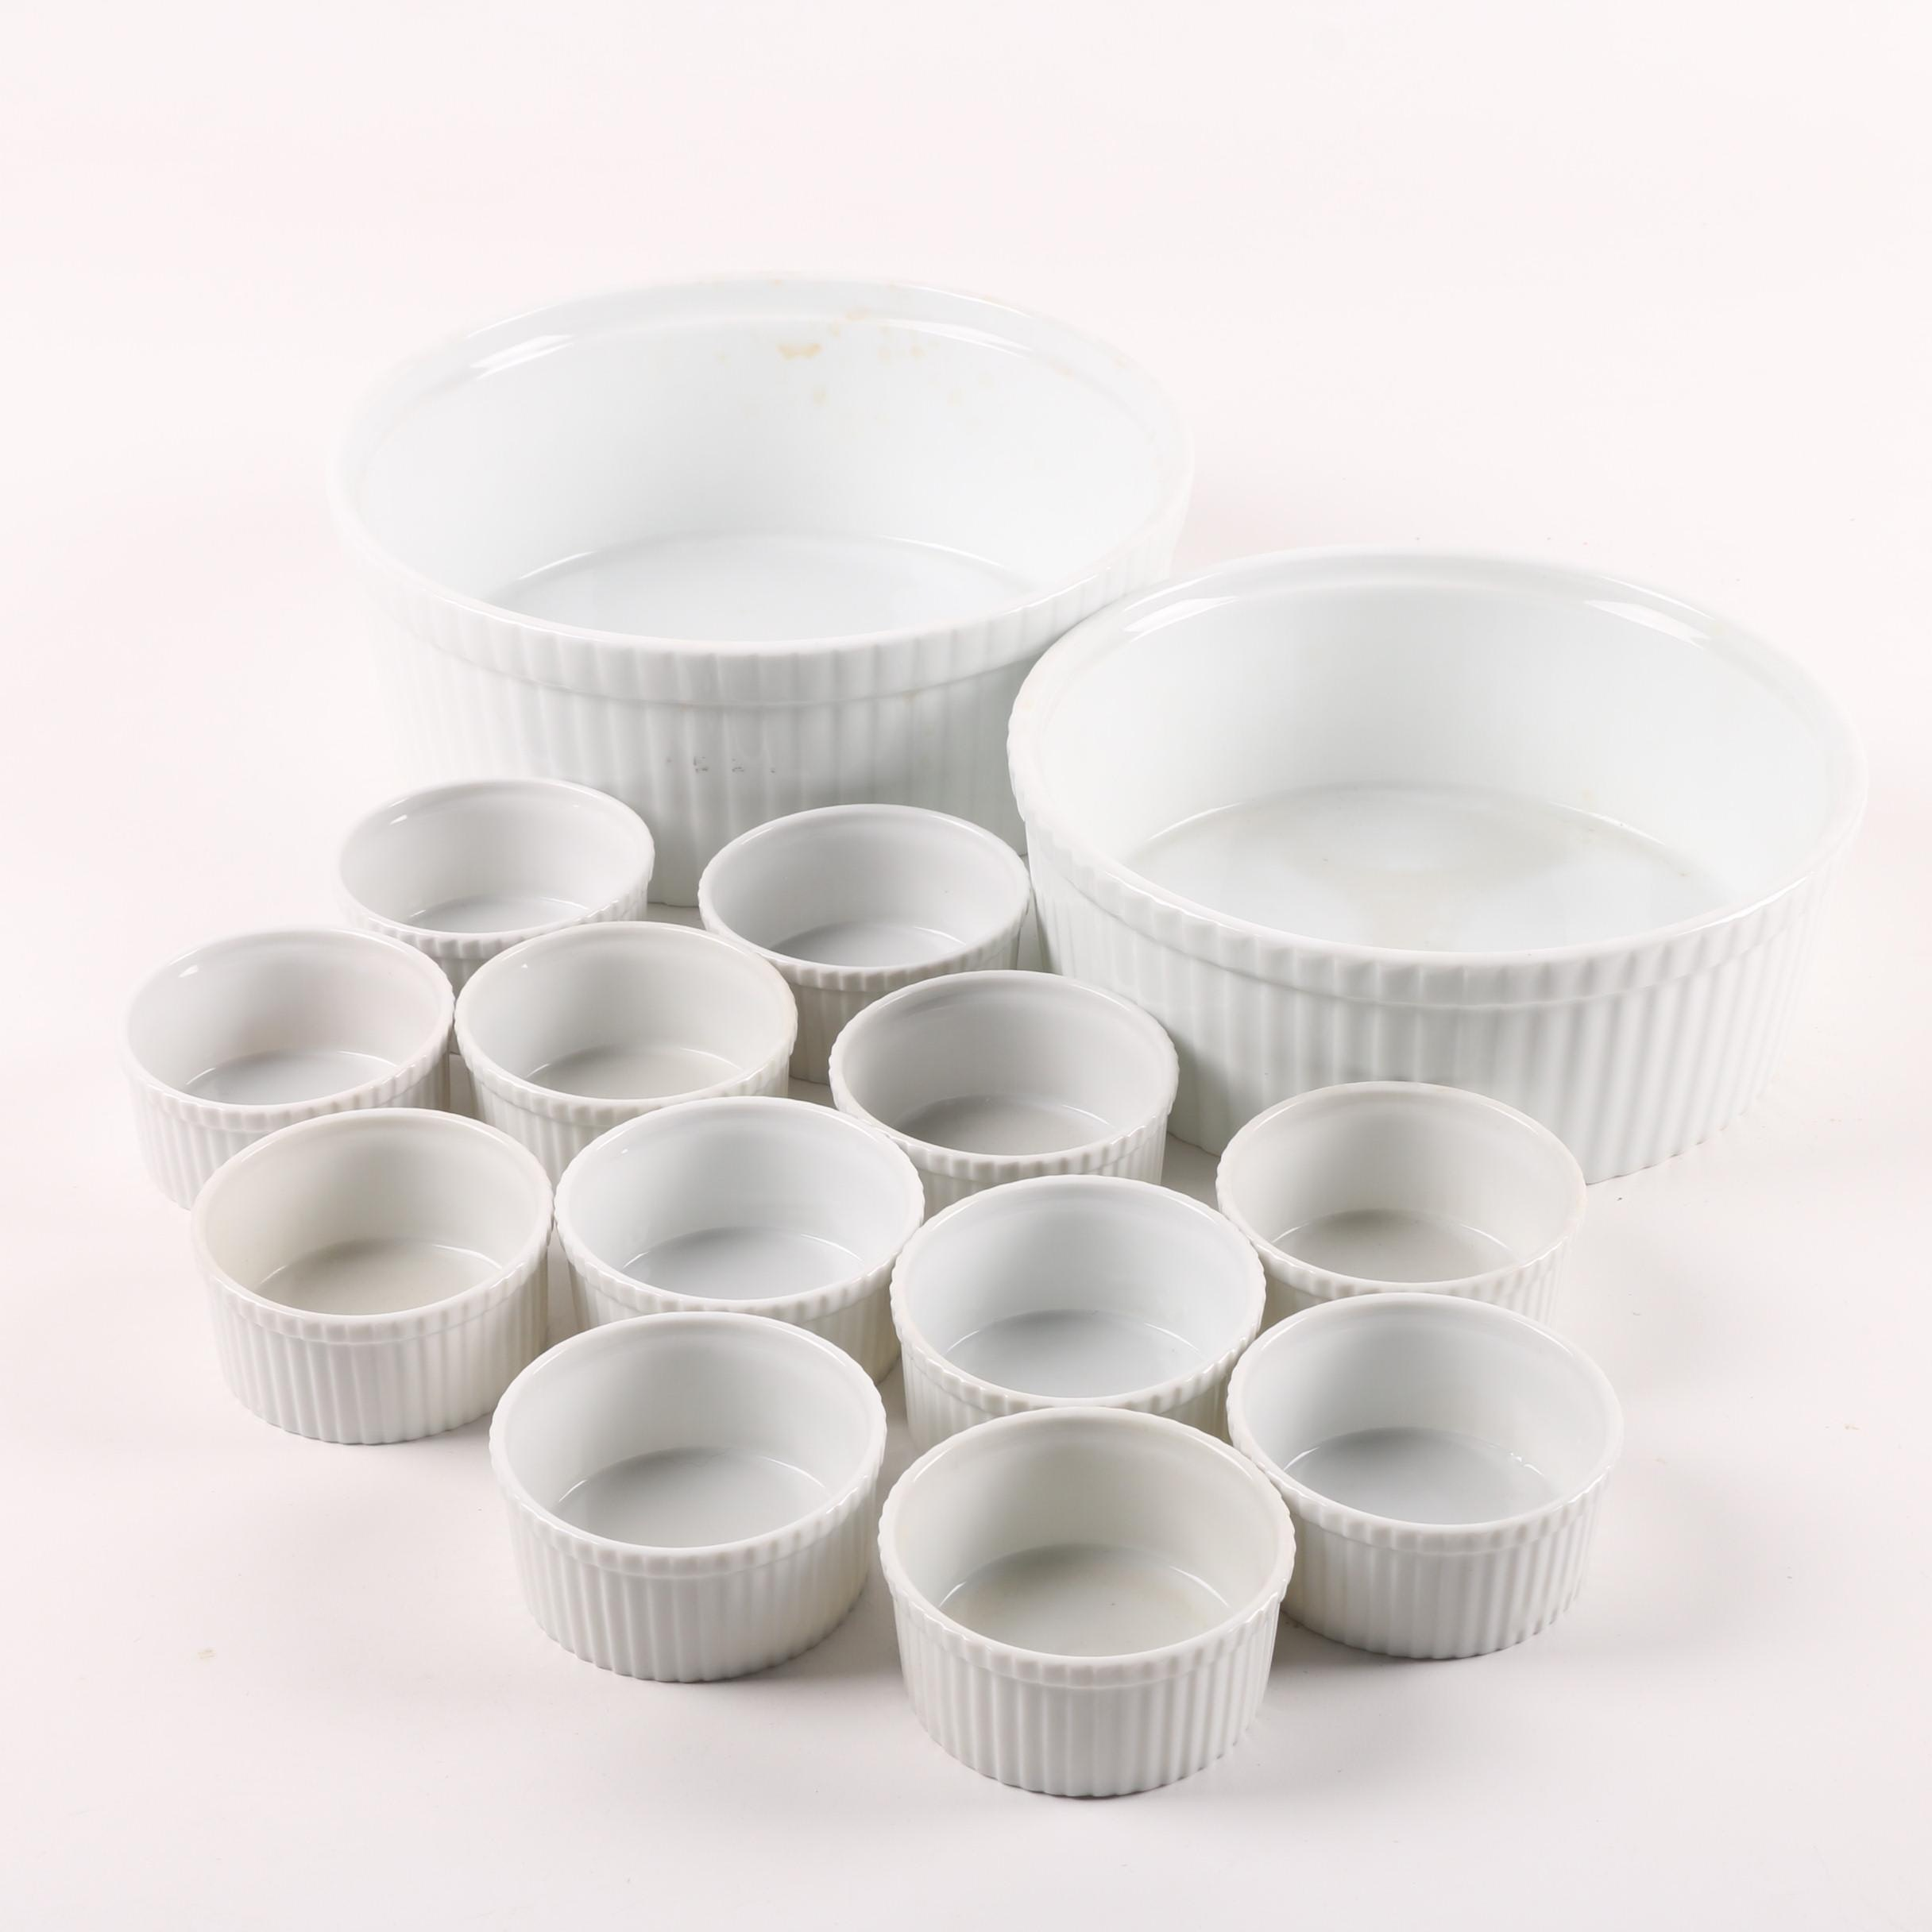 White Ribbed Porcelain Casserole Dishes and Ramekins